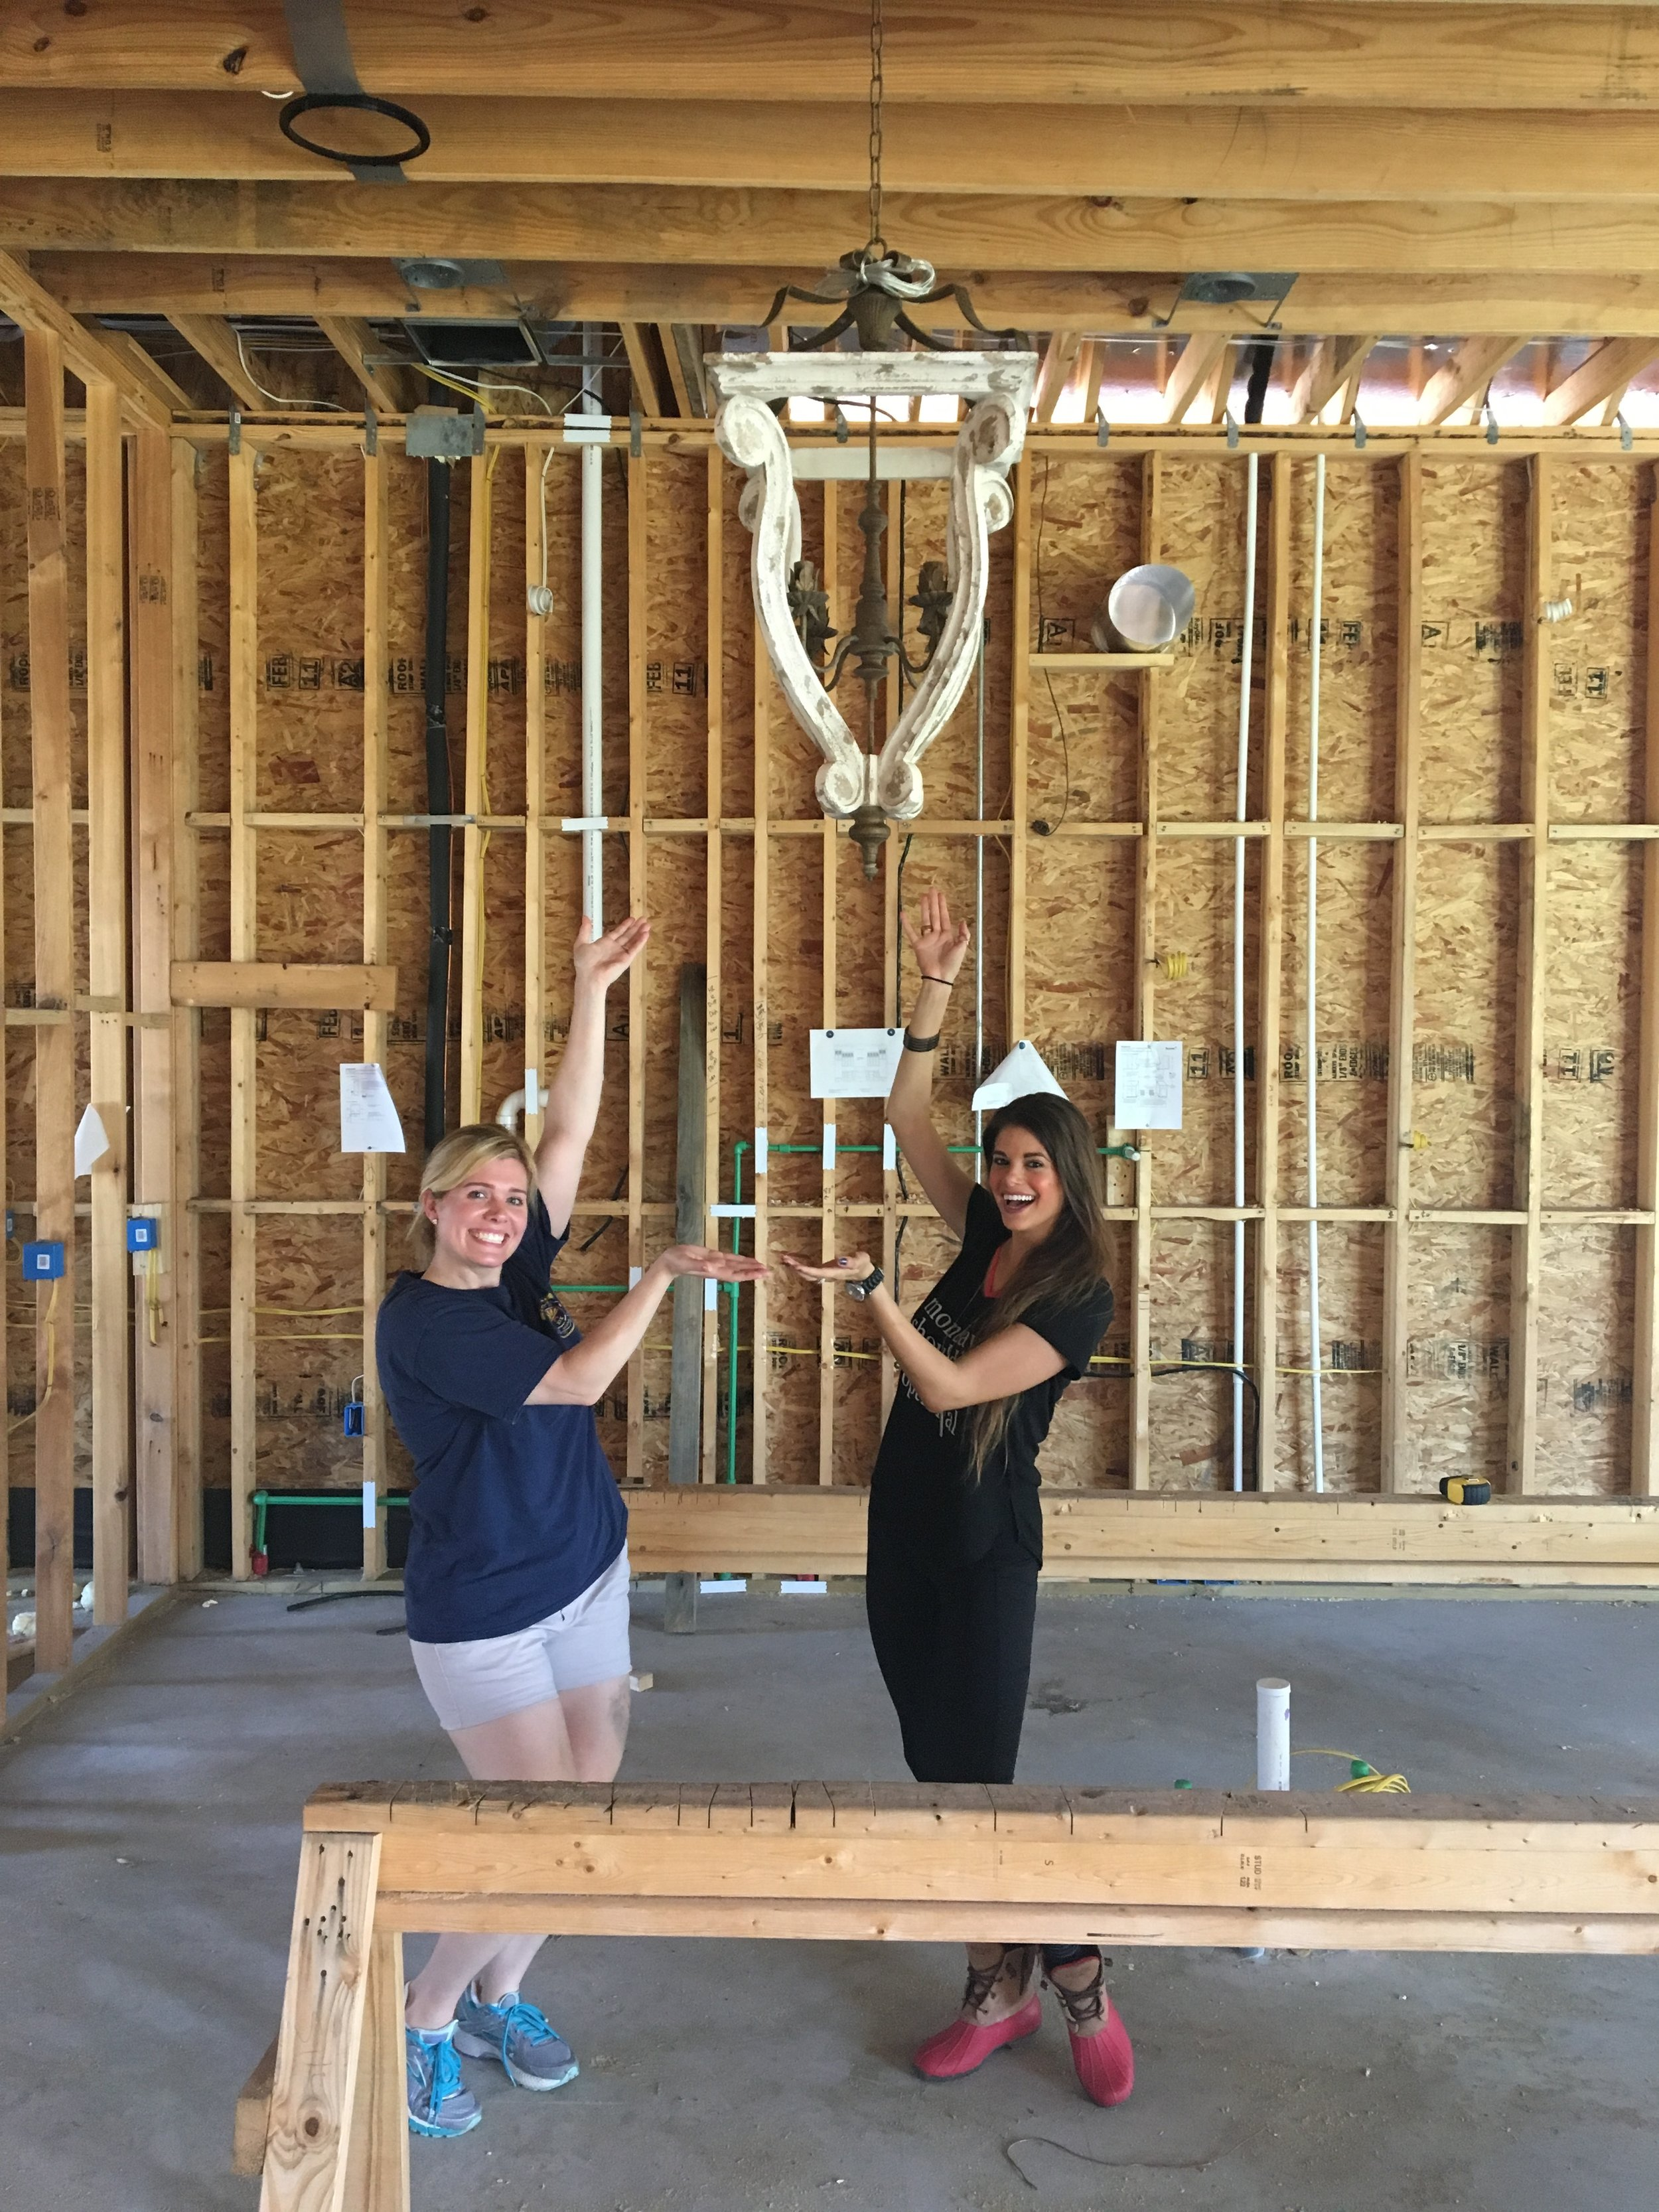 On left: Shannon Dufrene / Homeowner  On right: Jacquelyn Lindsey / Designer